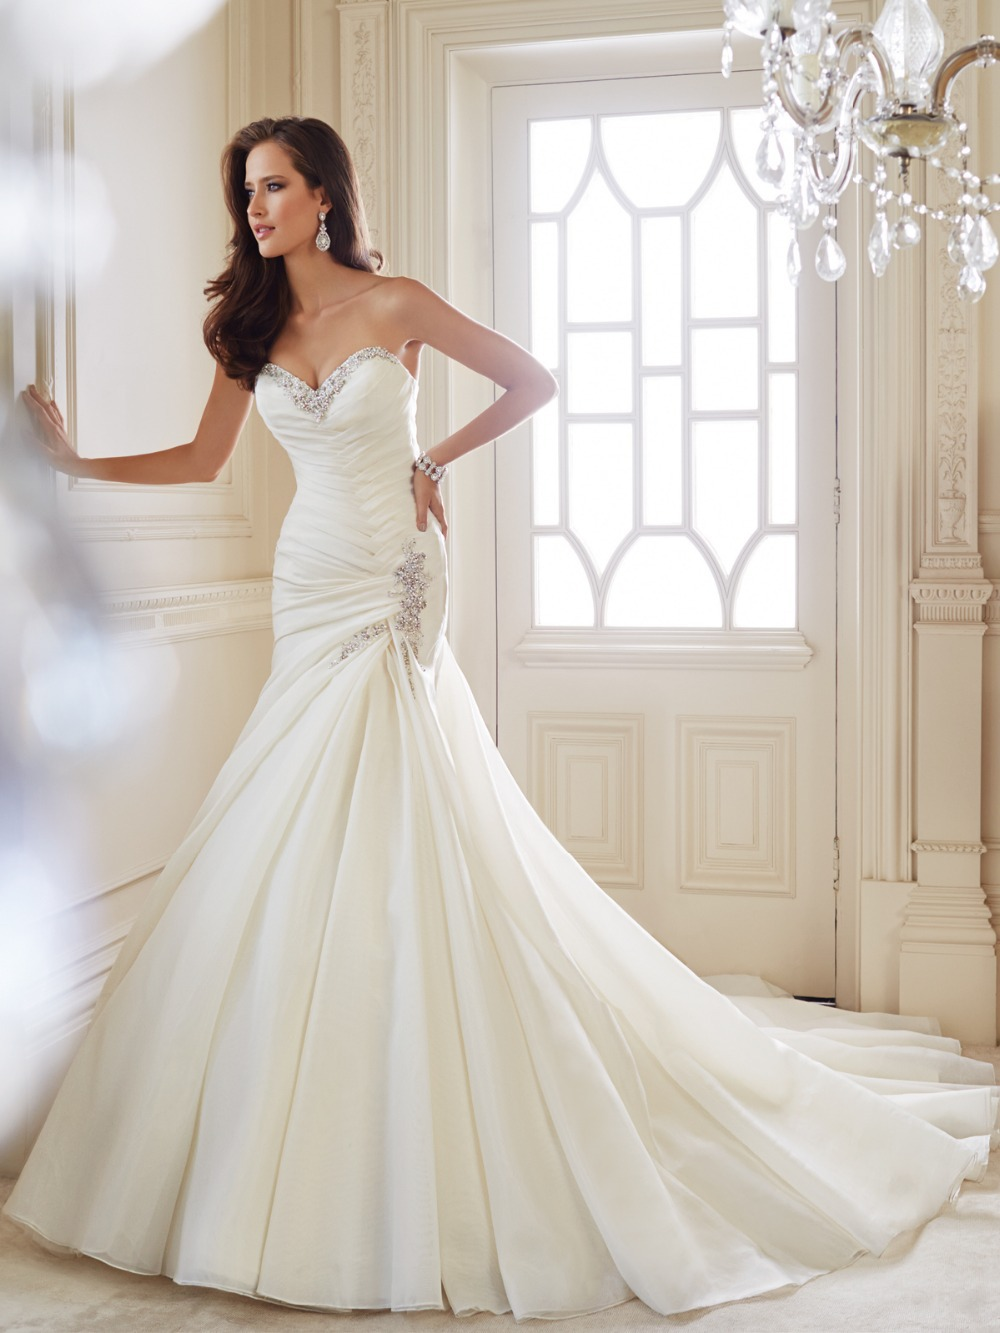 Cuquitoycuquitadaniyanna Mermaid Wedding Dresses With